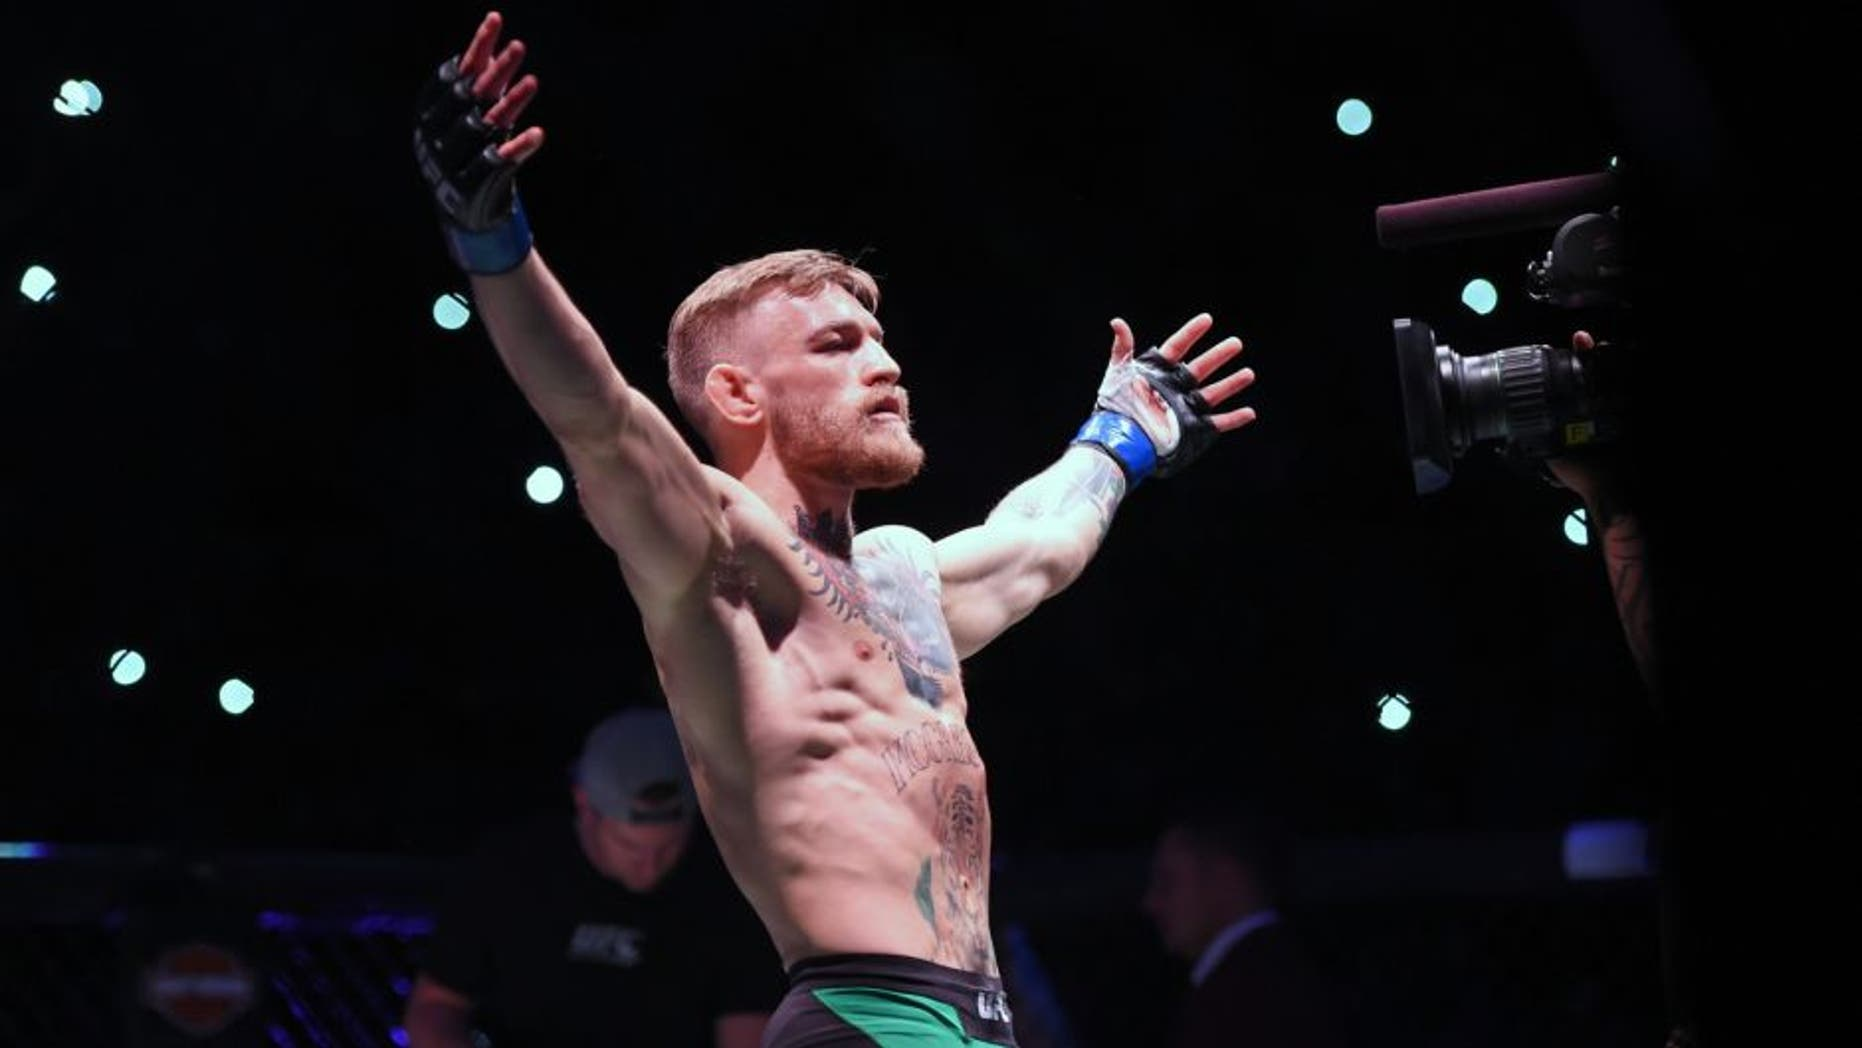 LAS VEGAS, NEVADA - DECEMBER 12: Conor McGregor of Ireland is introduced to the crowd before facing Jose Aldo of Brazil in their featherweight championship bout during the UFC 194 event inside MGM Grand Garden Arena on December 12, 2015 in Las Vegas, Nevada. (Photo by Jeff Bottari/Zuffa LLC/Zuffa LLC via Getty Images)